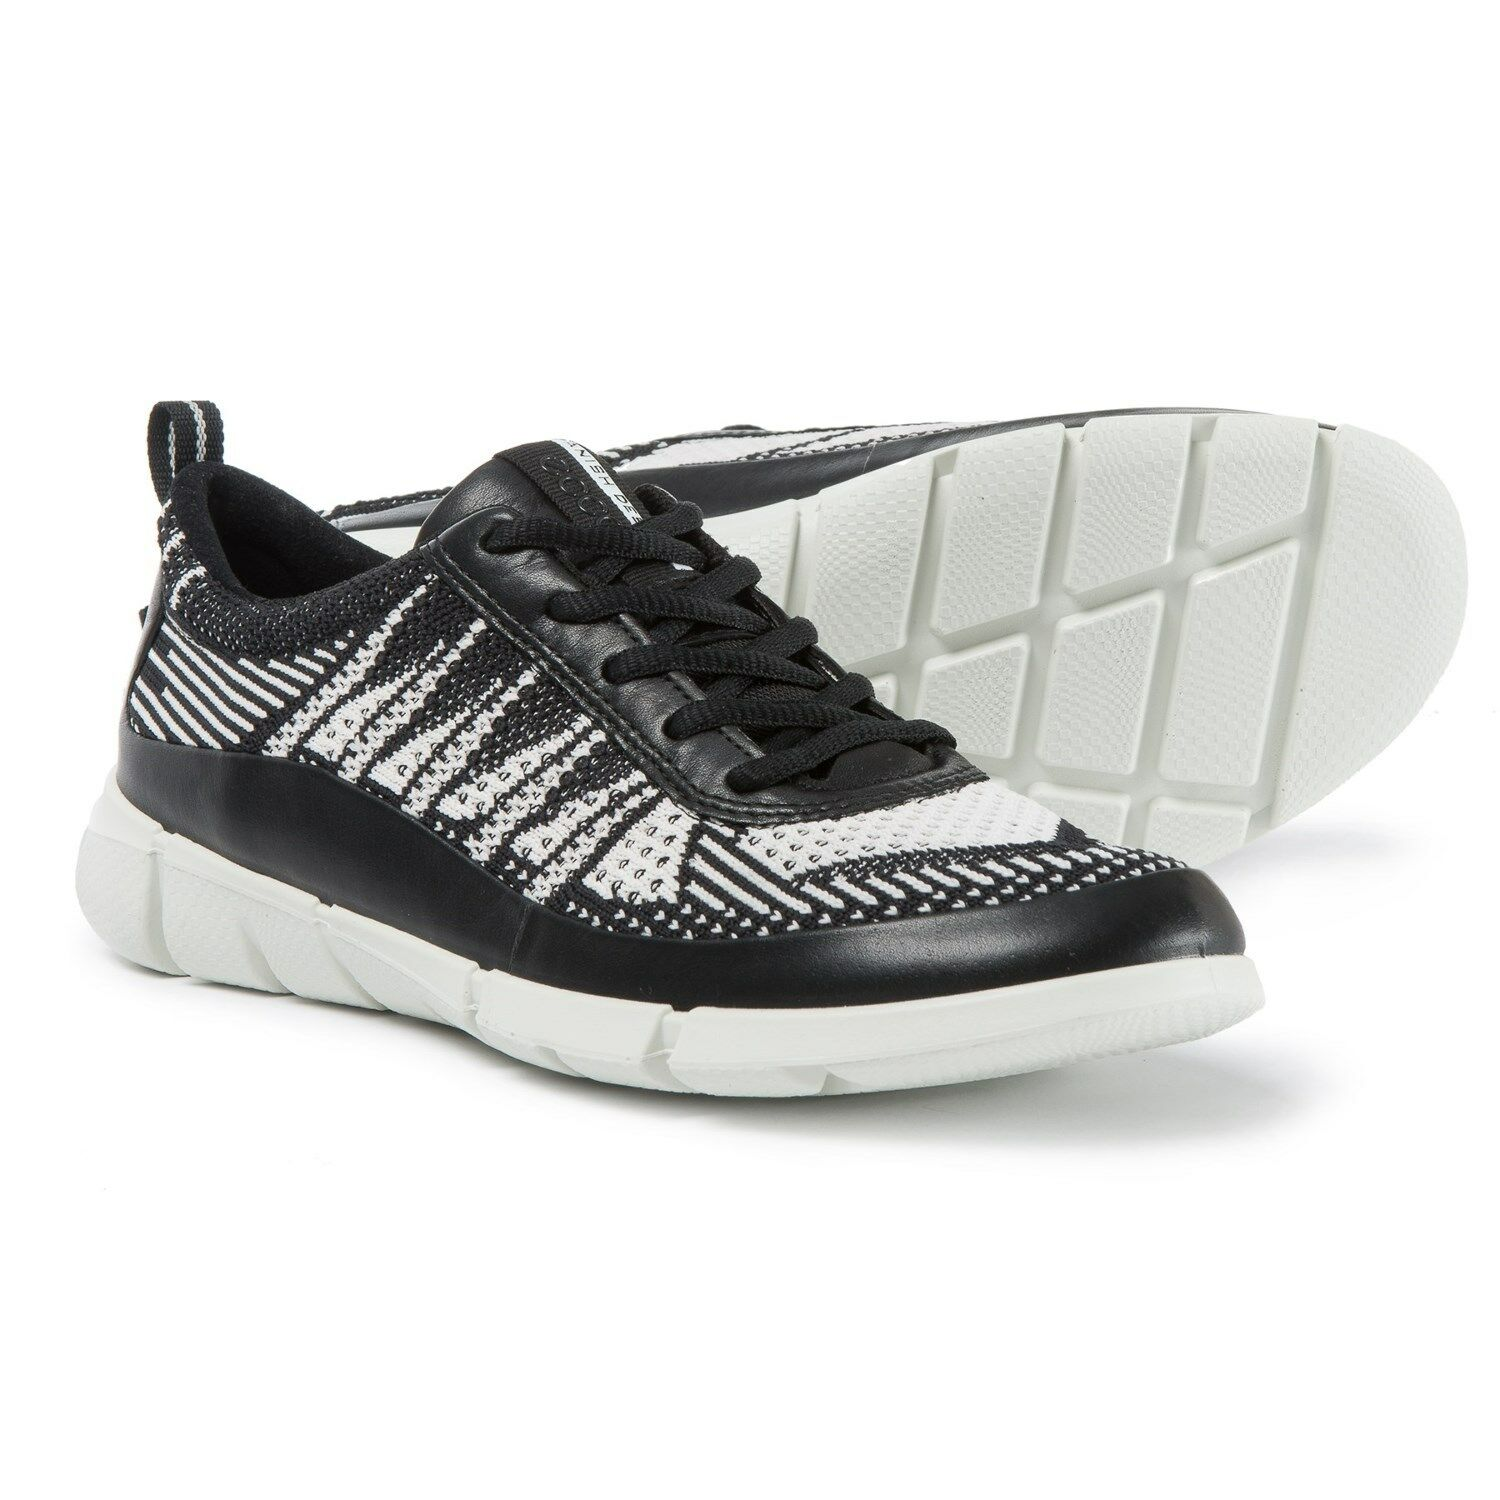 New Damens`s ECCO Intrinsic 1 Low Cut Lace Sneakers 86003